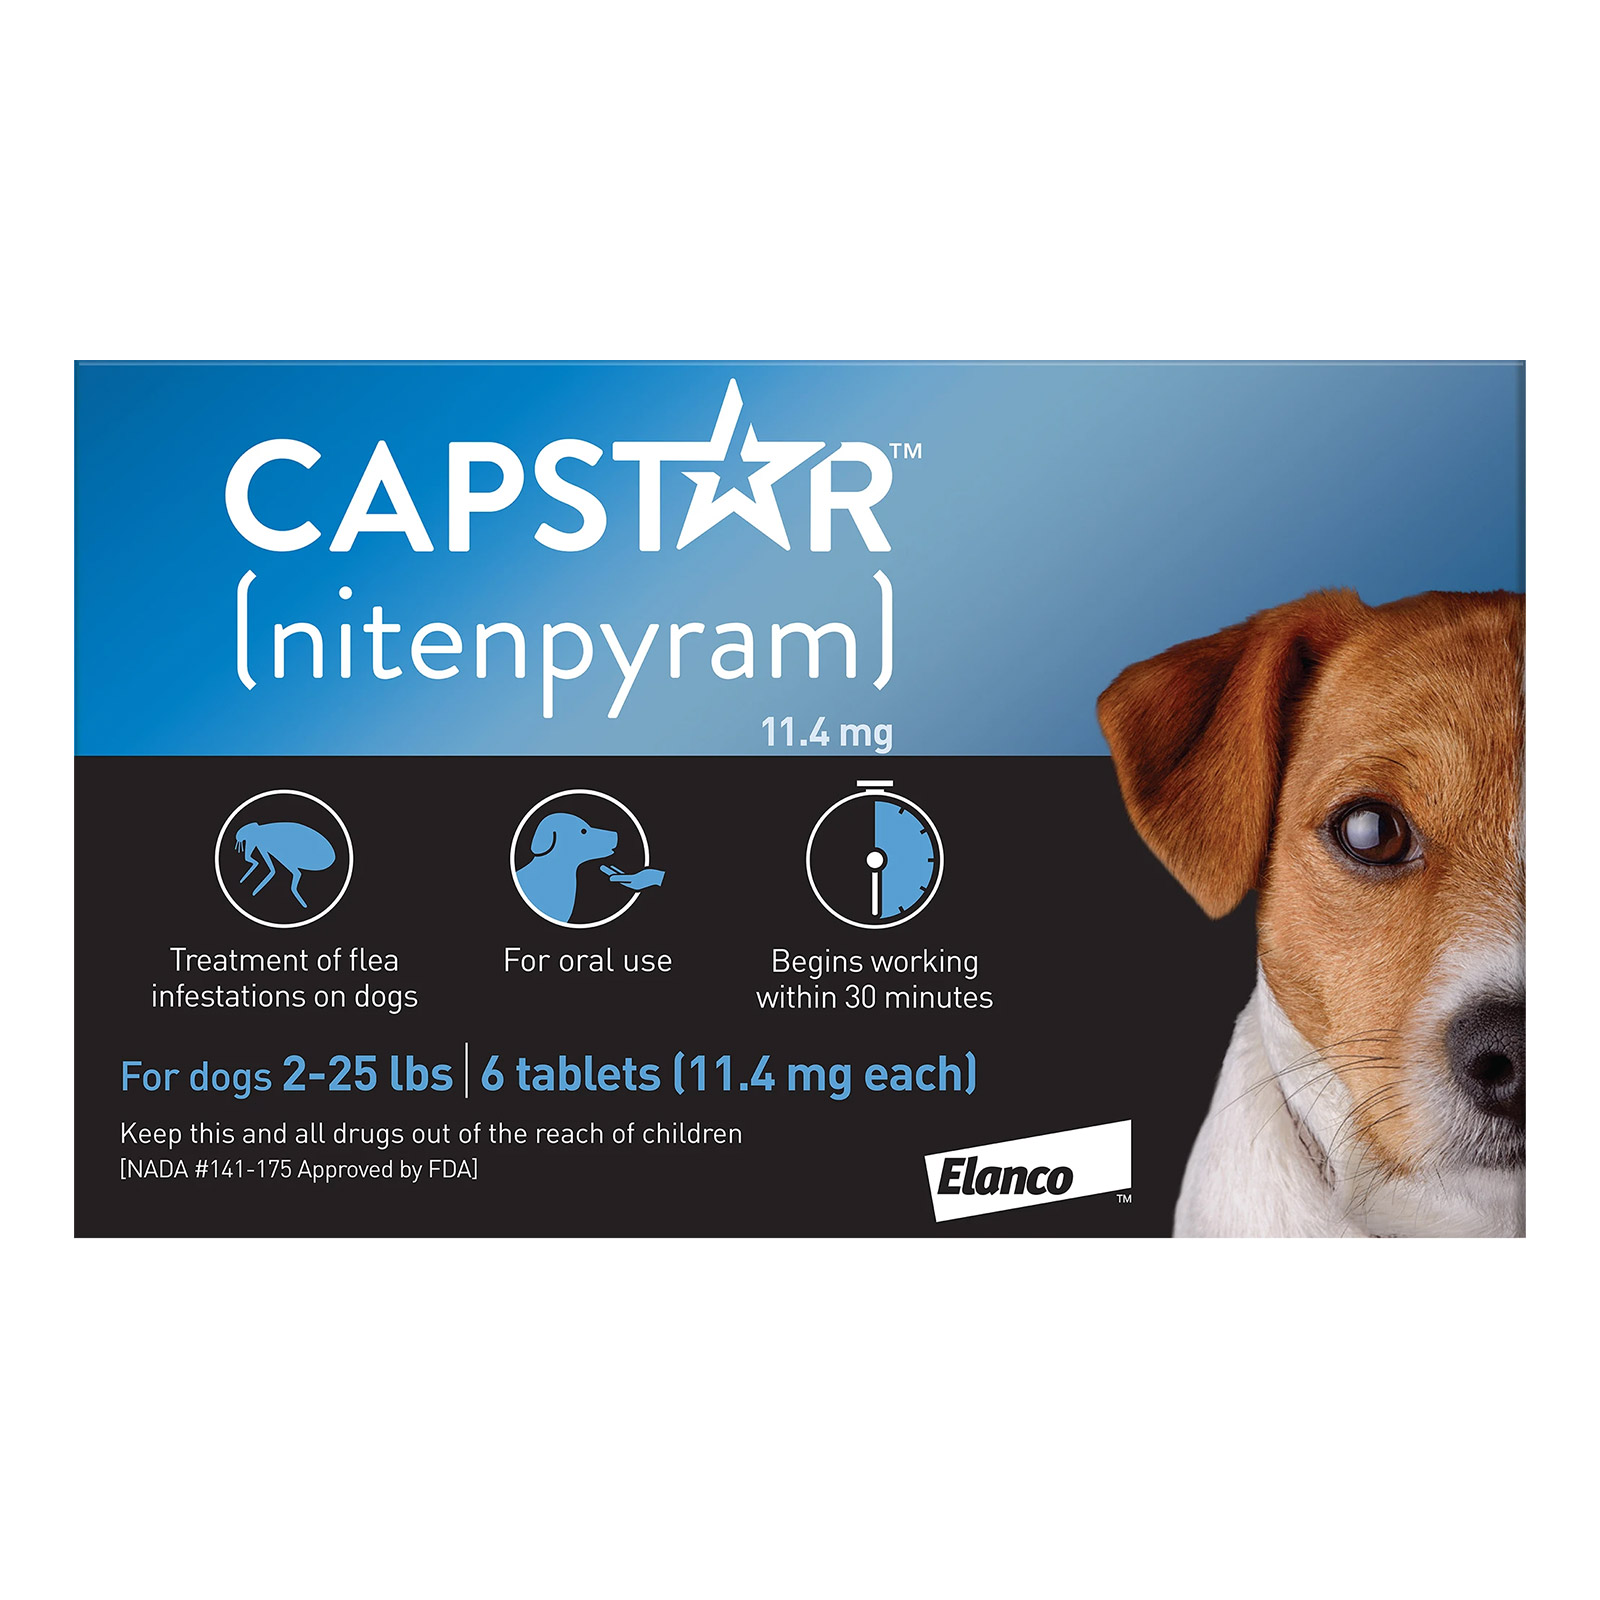 https://www.budgetpetcare.com/images/productsize/Capstar-Blue-for-Cats-and-Small-Dogs-2-25-lbs.jpg